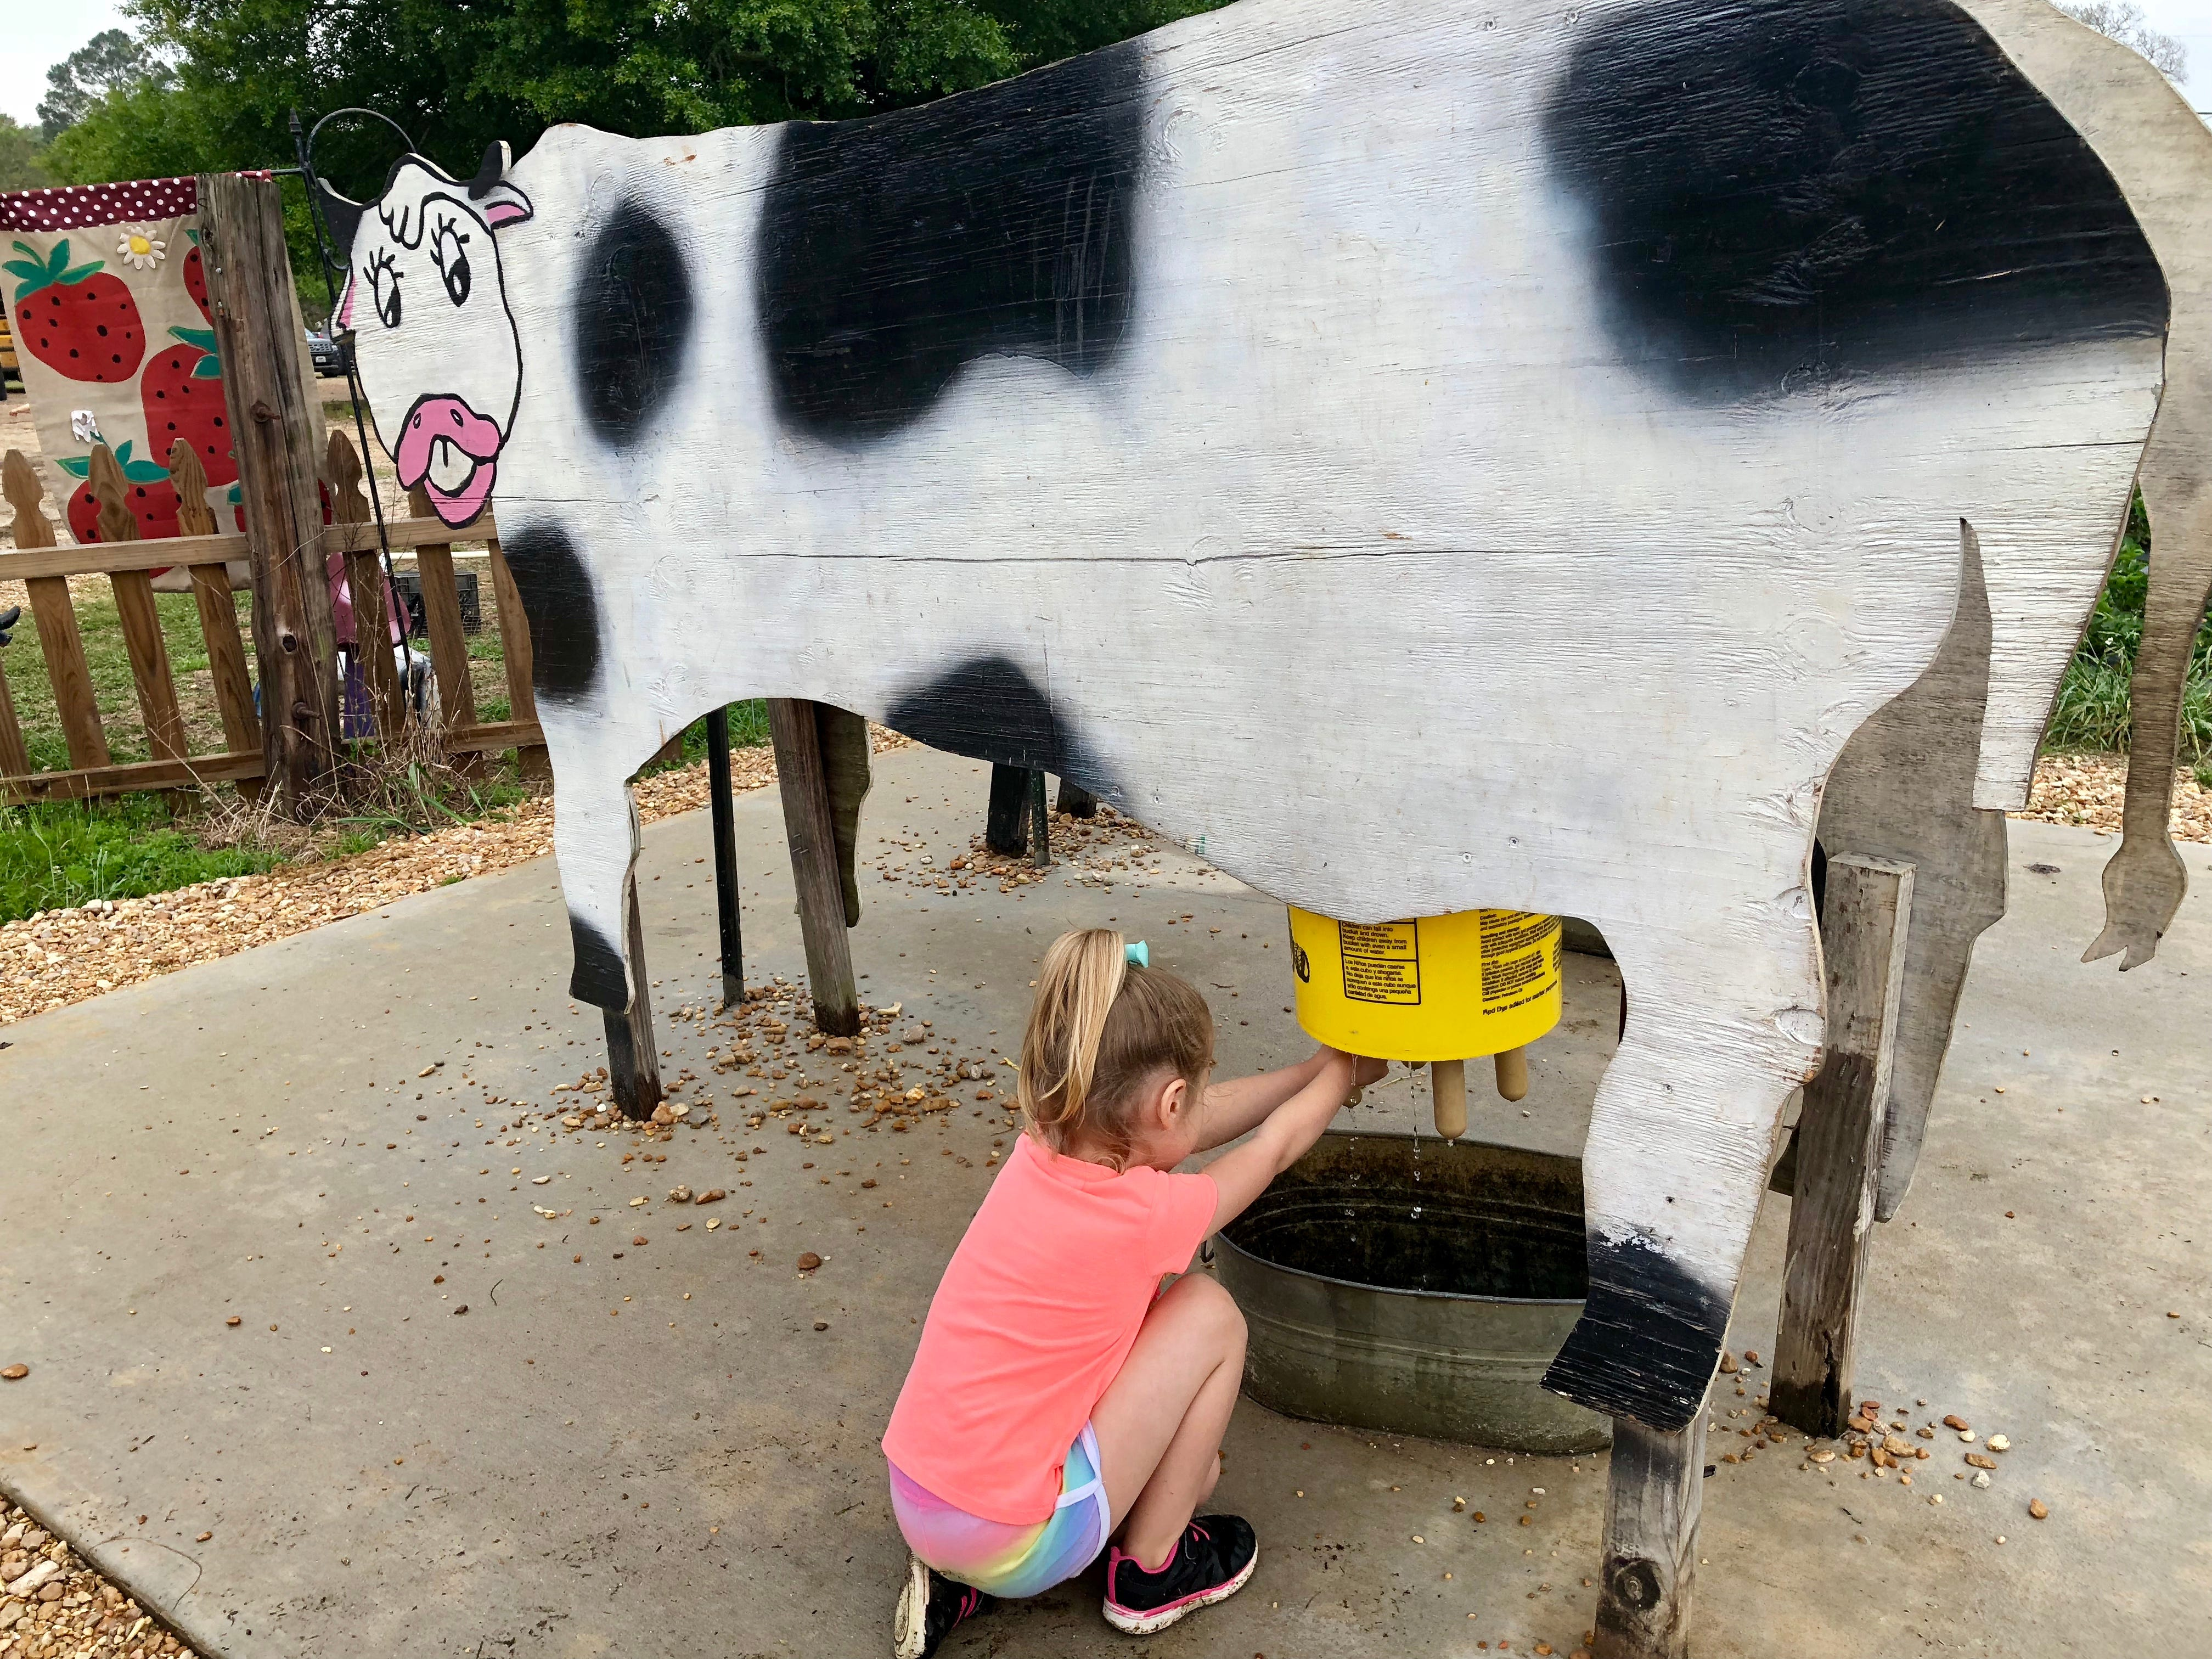 Avery Guidry learns to milk a cow at Mrs. Heather's Strawberry Farm in Albany, Louisiana.